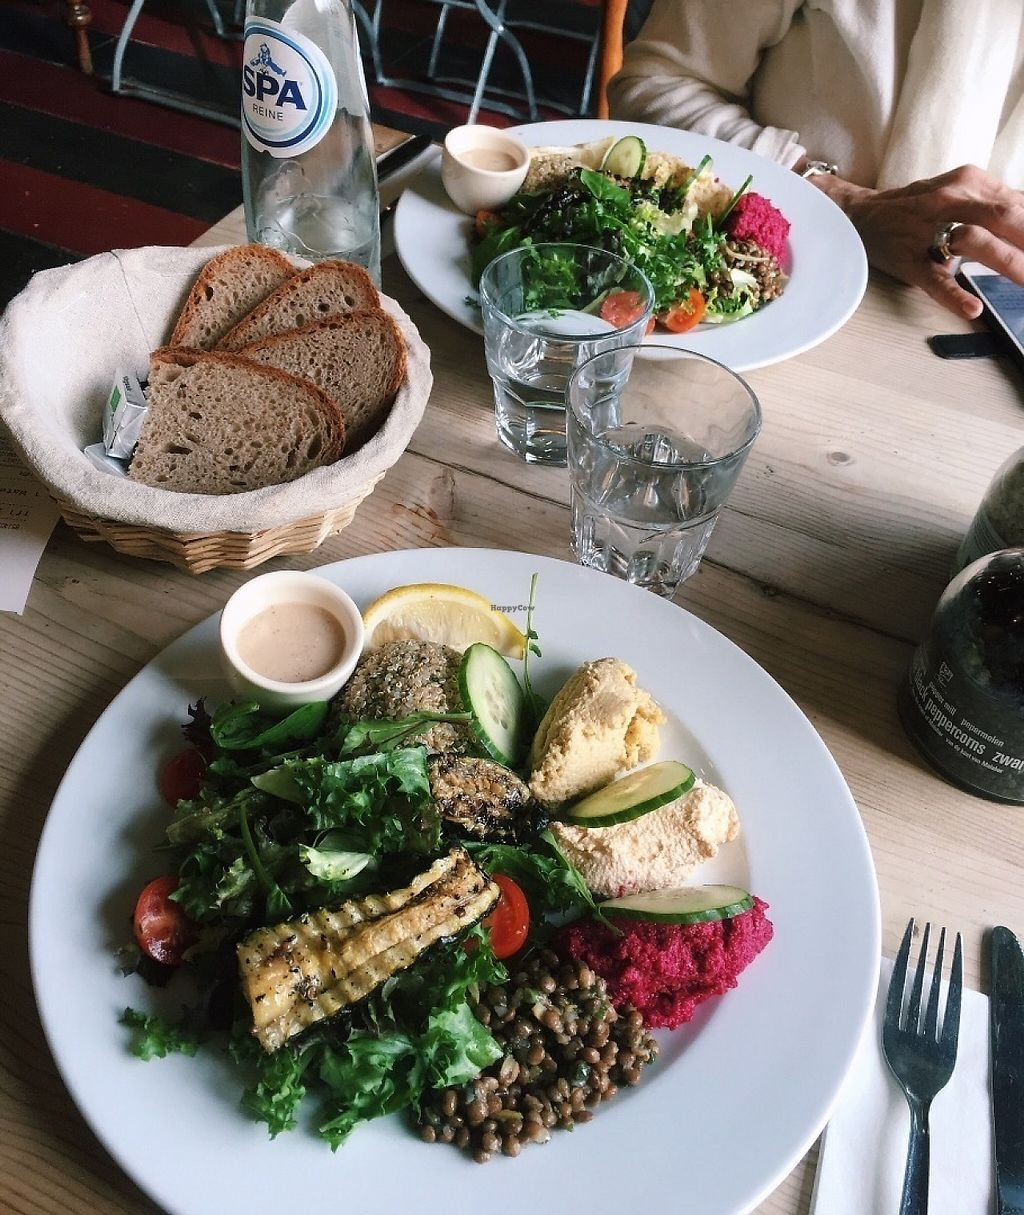 """Photo of Le Pain Quotidien  by <a href=""""/members/profile/LiesbetDilissen"""">LiesbetDilissen</a> <br/>This is my favourite dish EVER, I think! Quinoa salad! So tasty, so healthy! (100% vegan) <br/> May 14, 2017  - <a href='/contact/abuse/image/86329/258797'>Report</a>"""